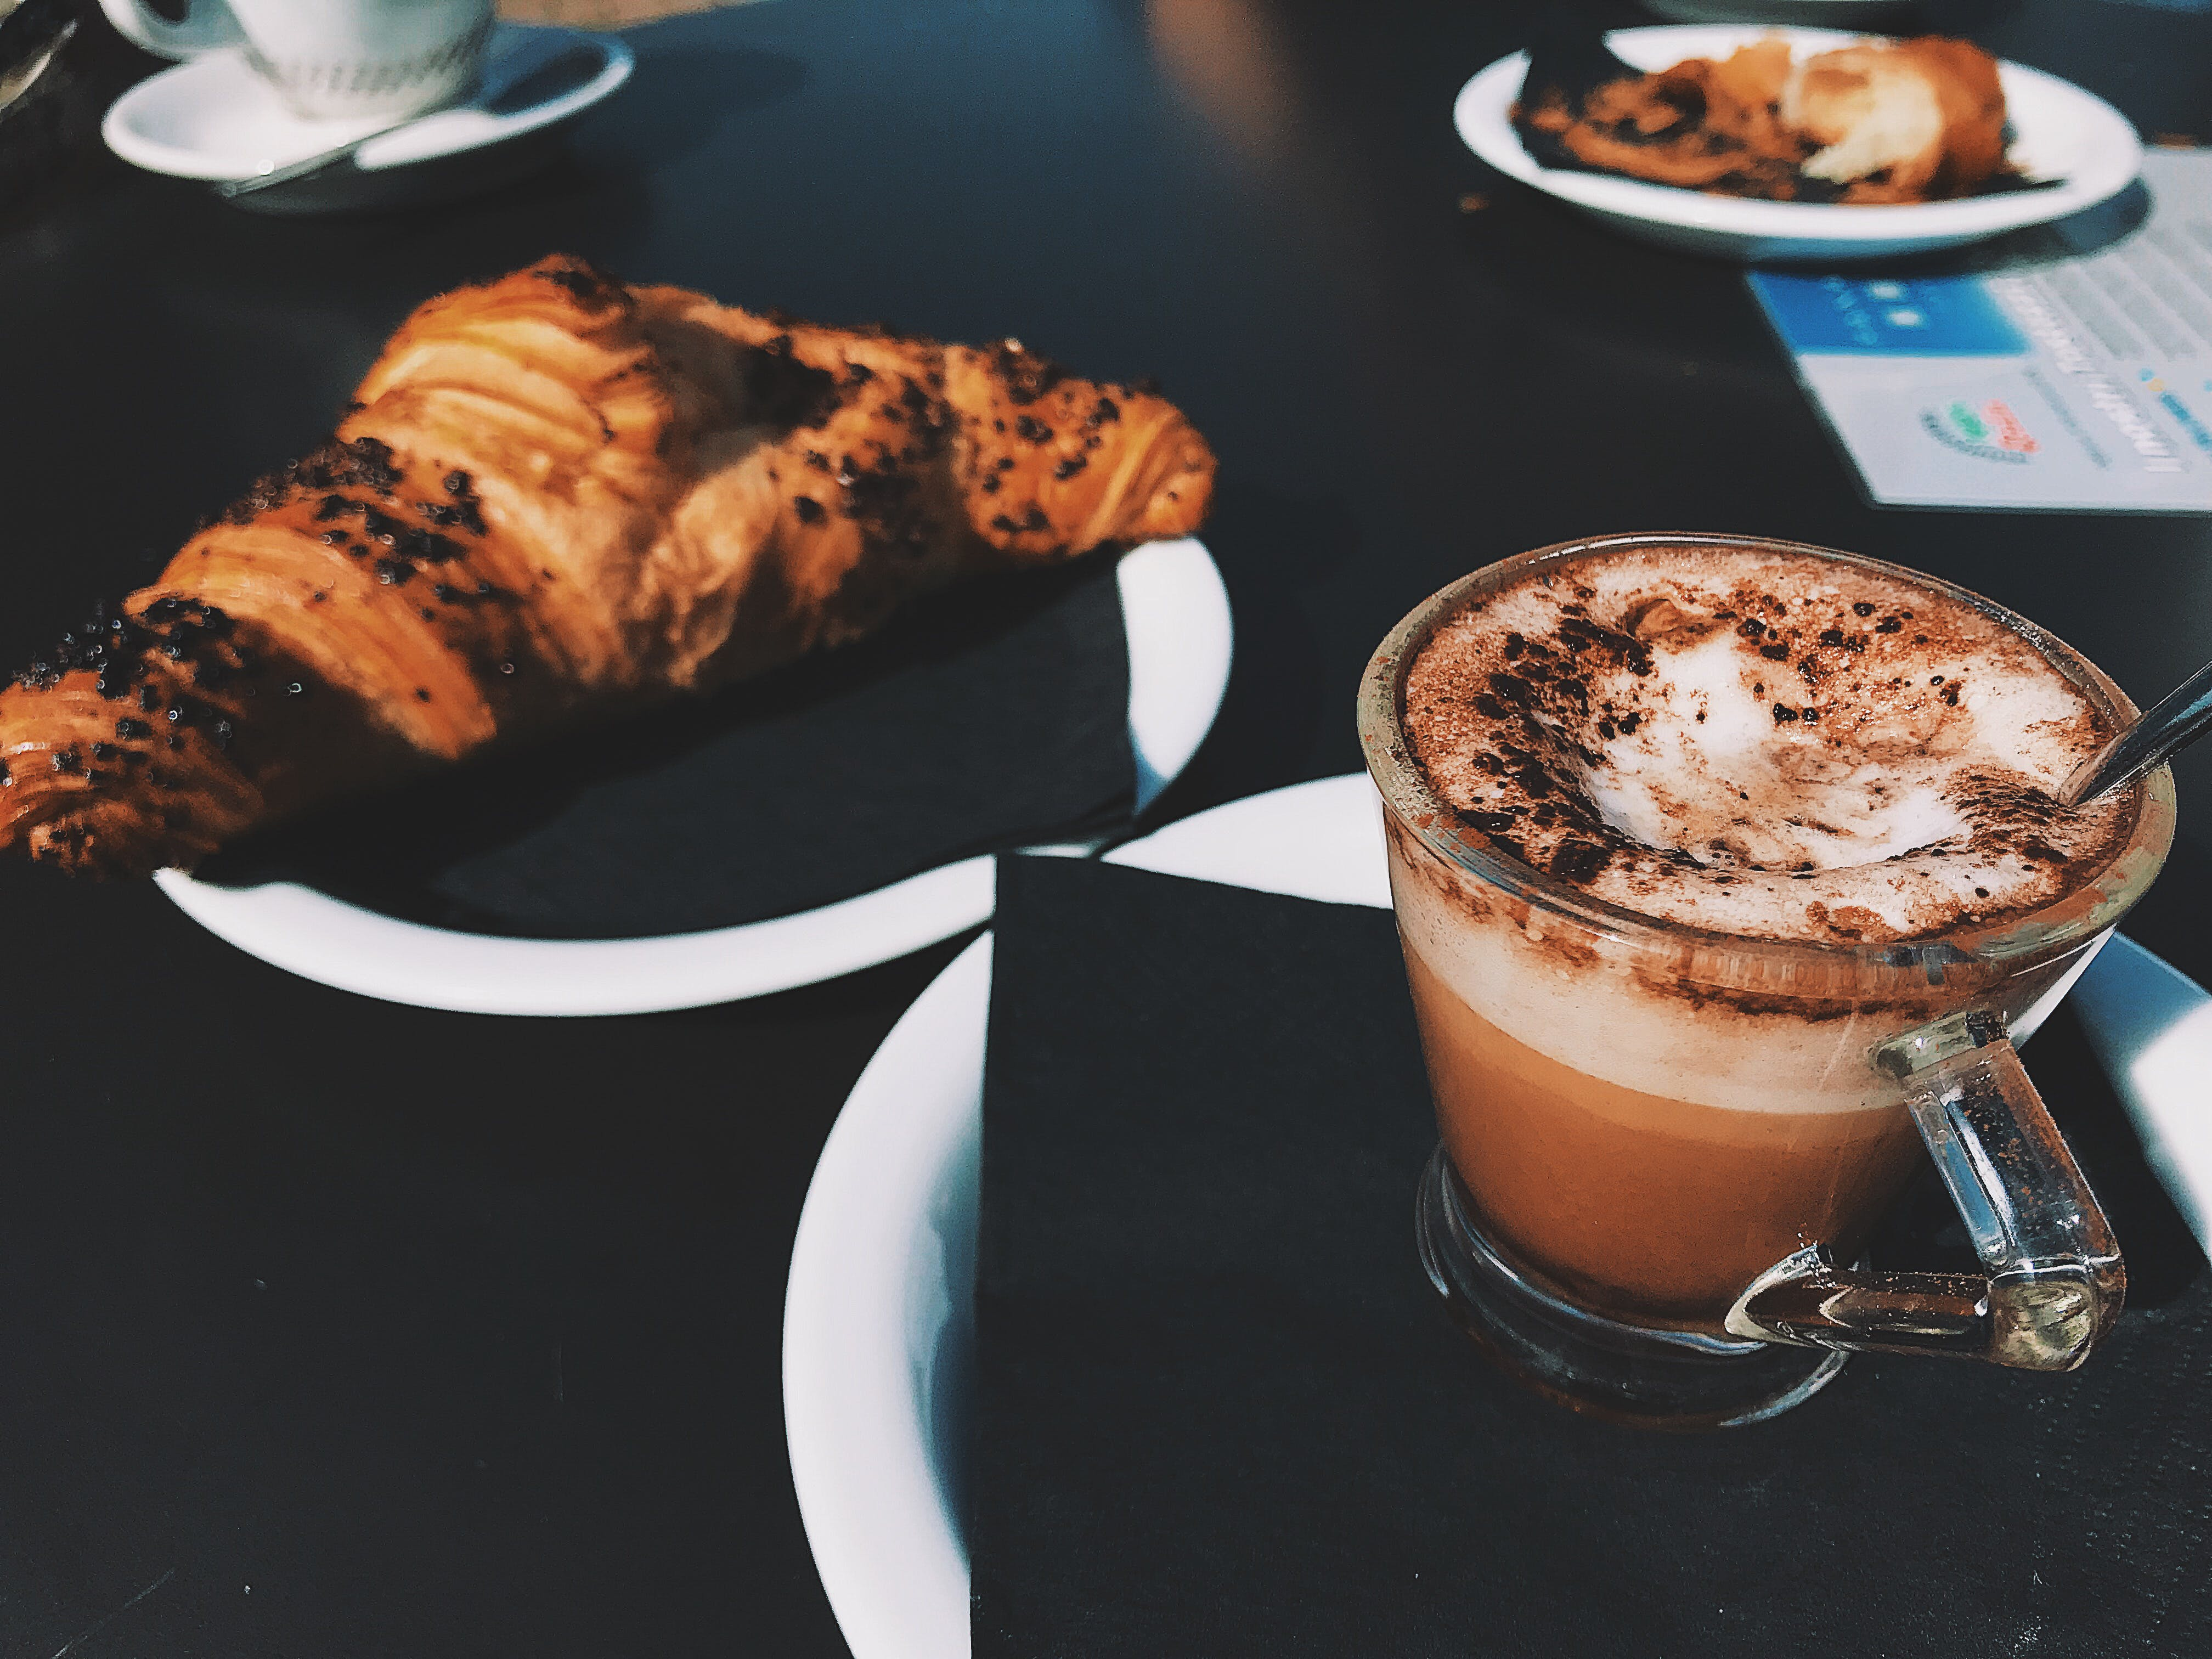 Clear Glass Cup Filled With Cappuccino Beside Croissant Bread